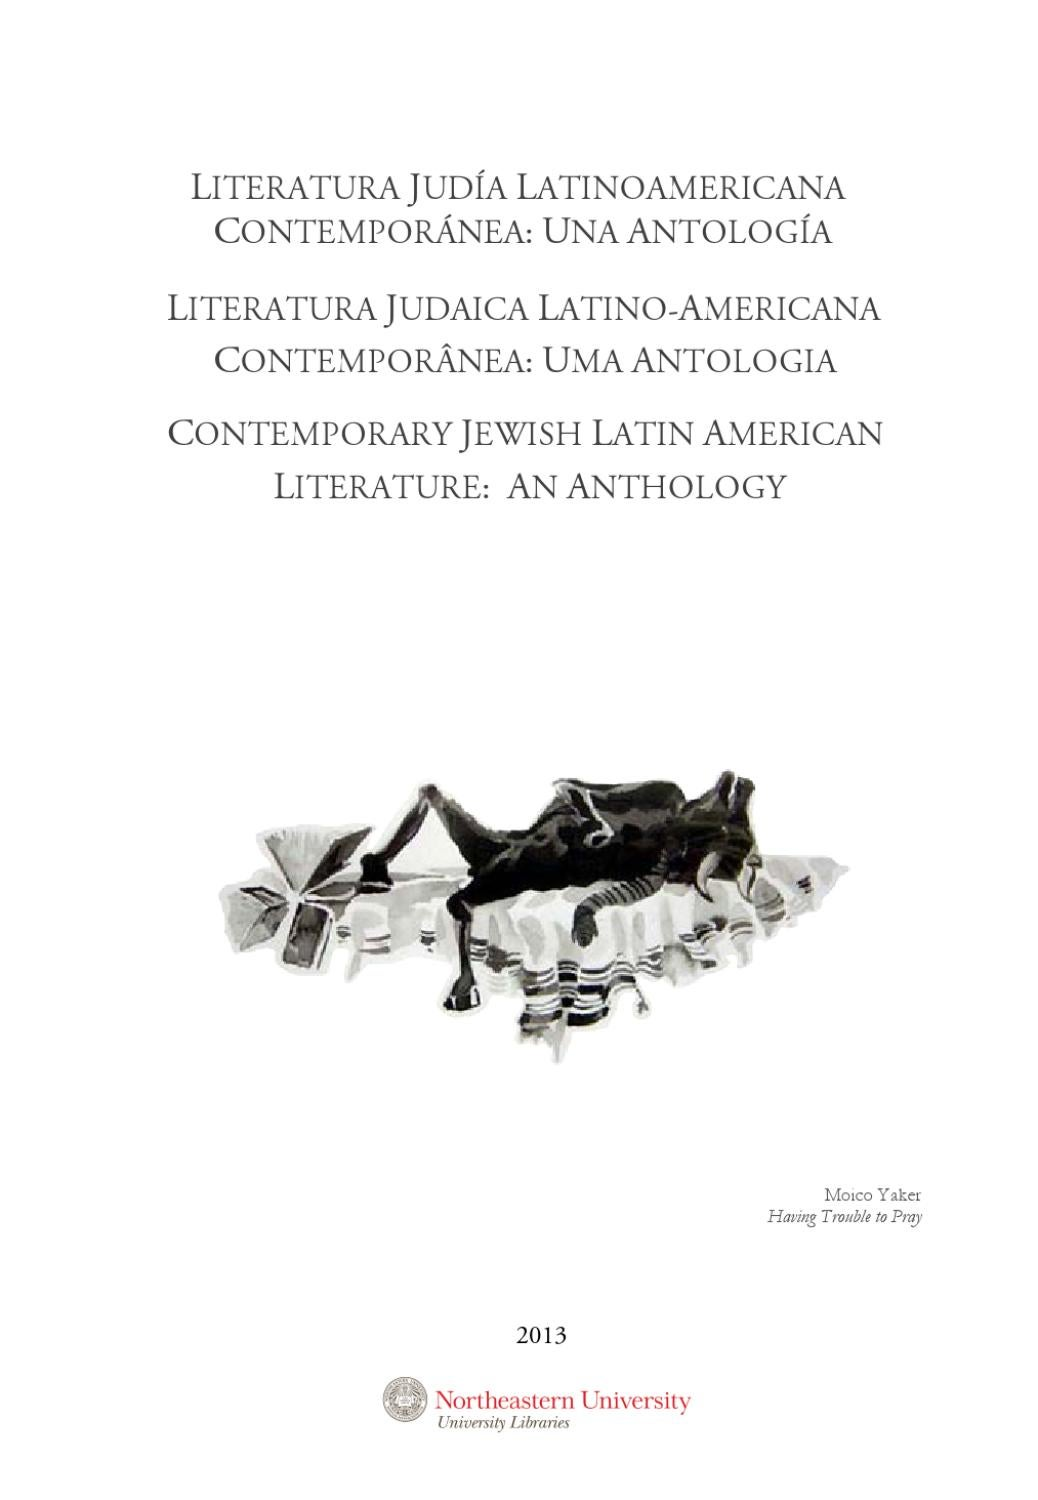 Literatura judía latinoamericana contemporánea by Northeastern University  Libraries - issuu 0e39ff023424